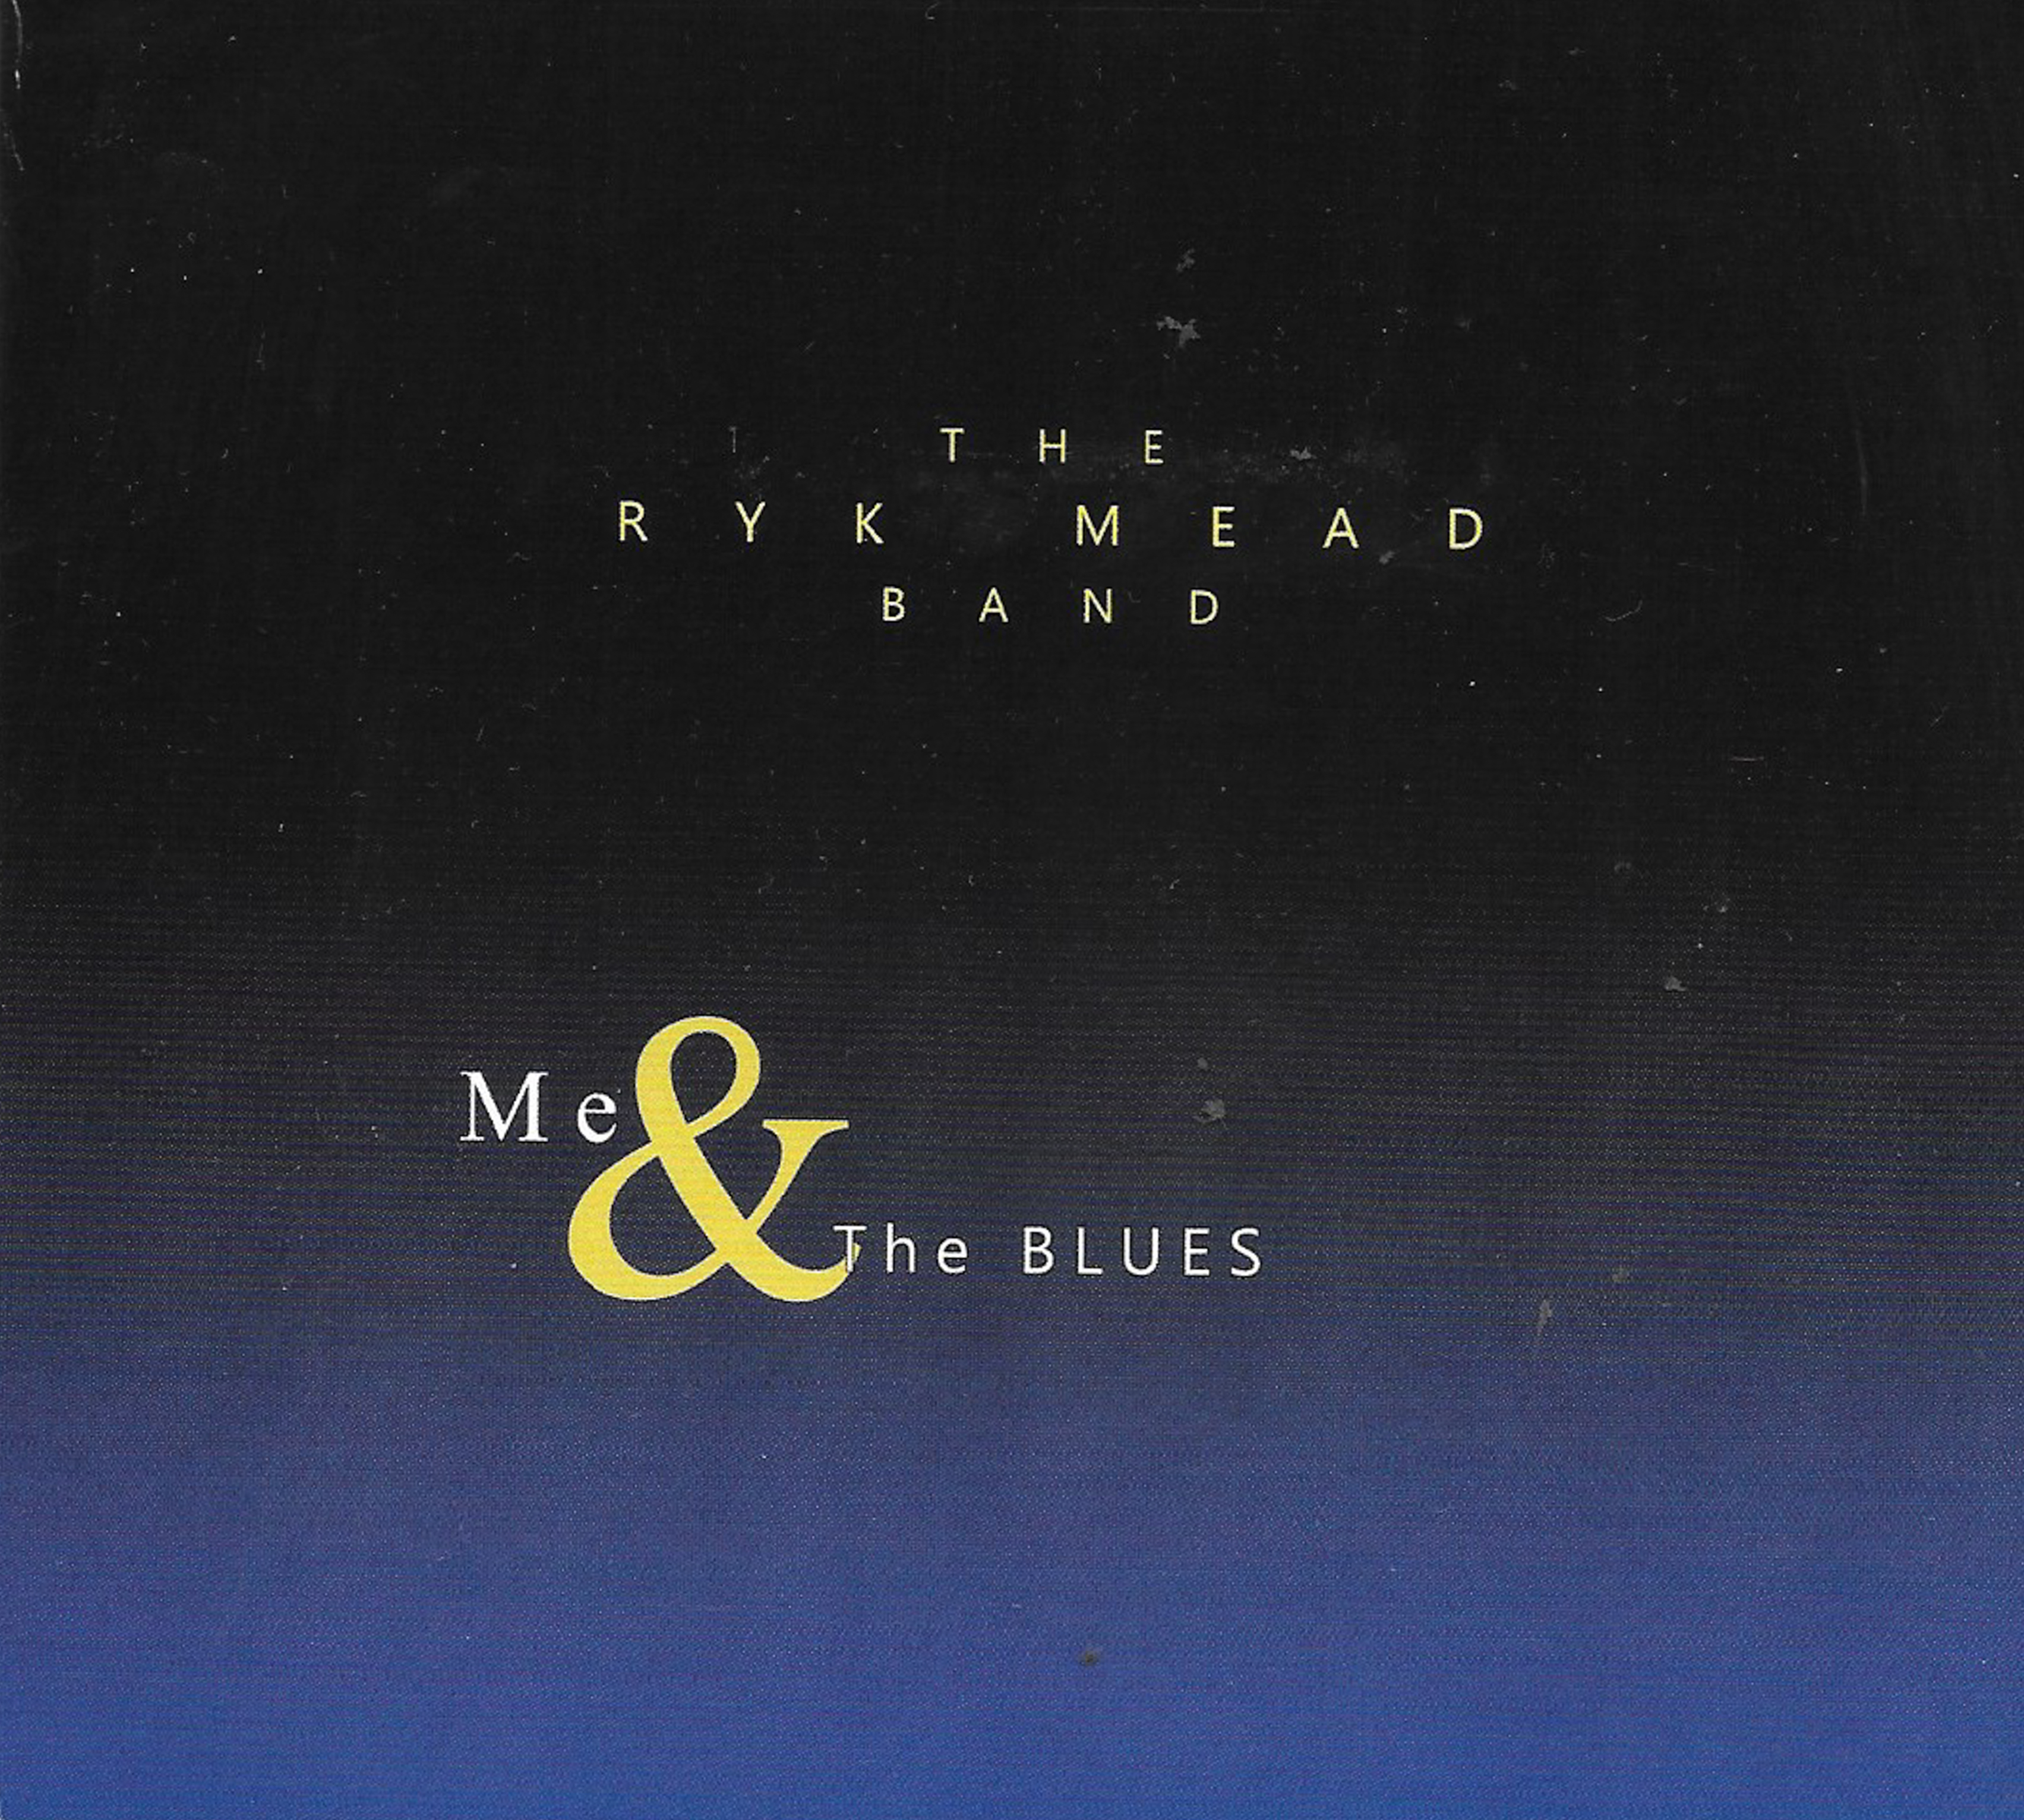 The Ryk Mead Band doubles up on Me & The Blues